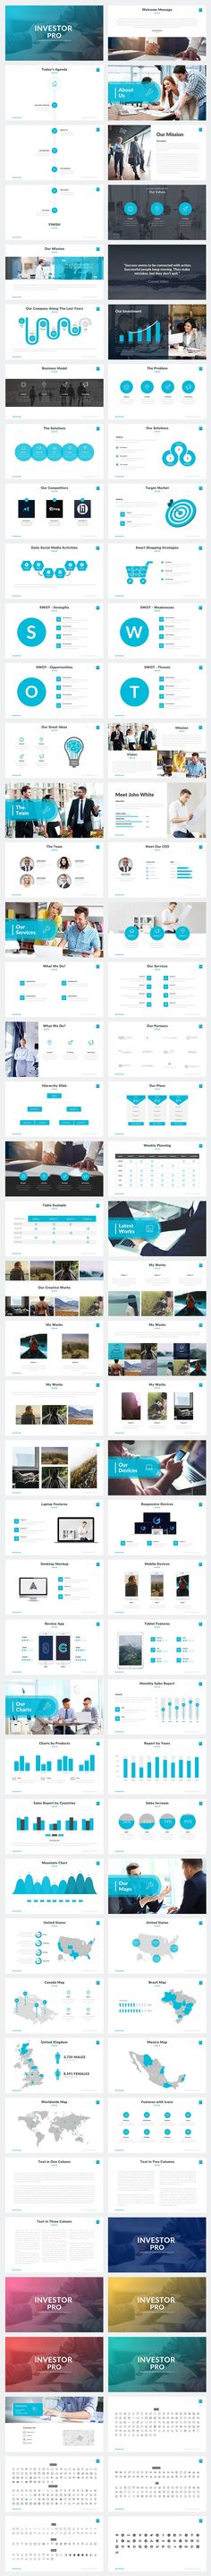 Investor Pro Powerpoint Template by Rocketo Graphics